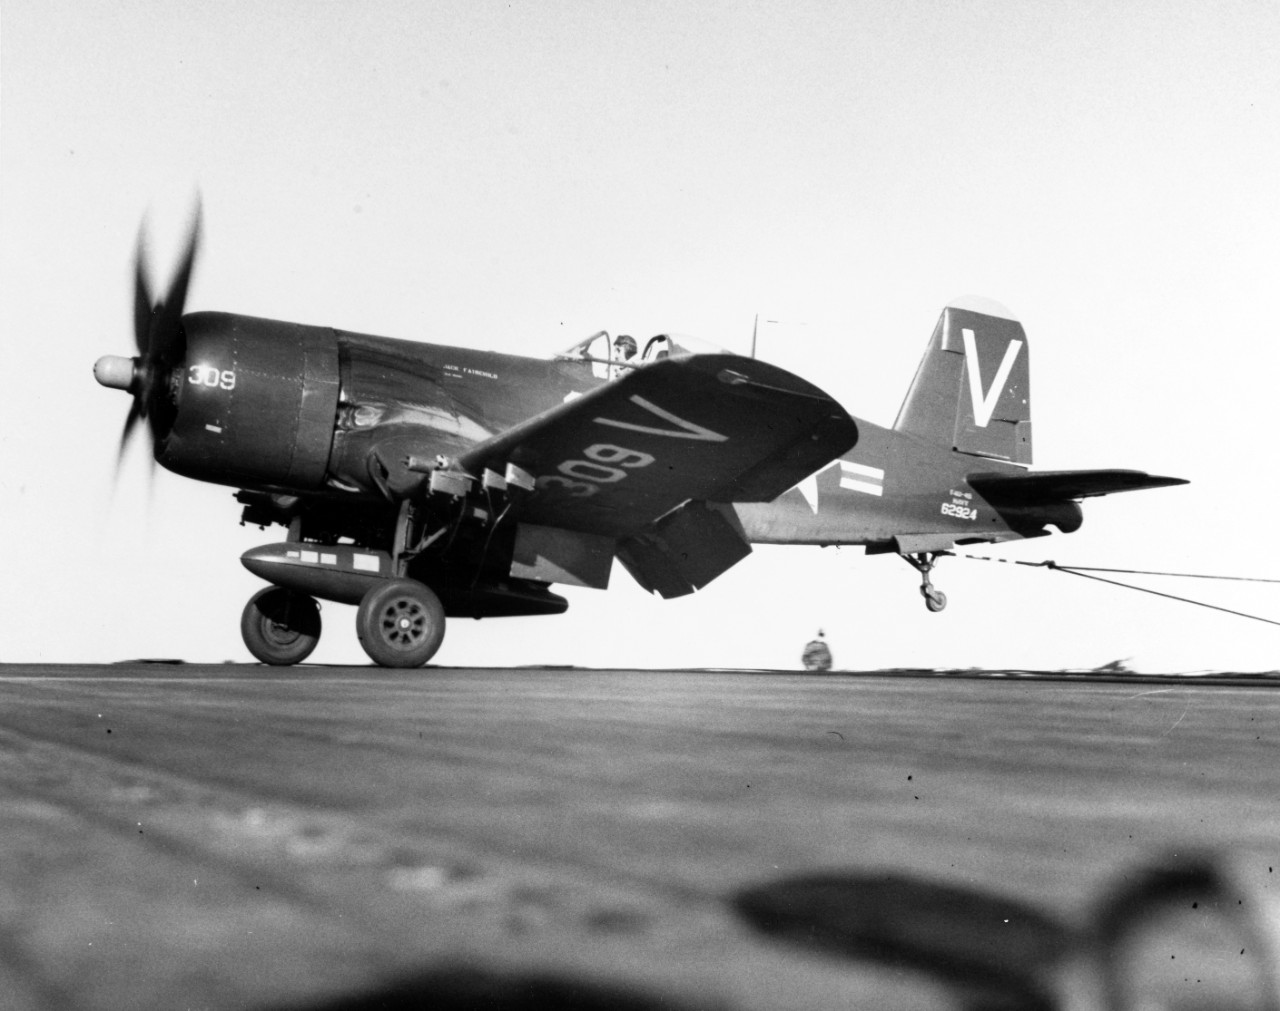 photo of Corsair airplane landing on aircraft carrier